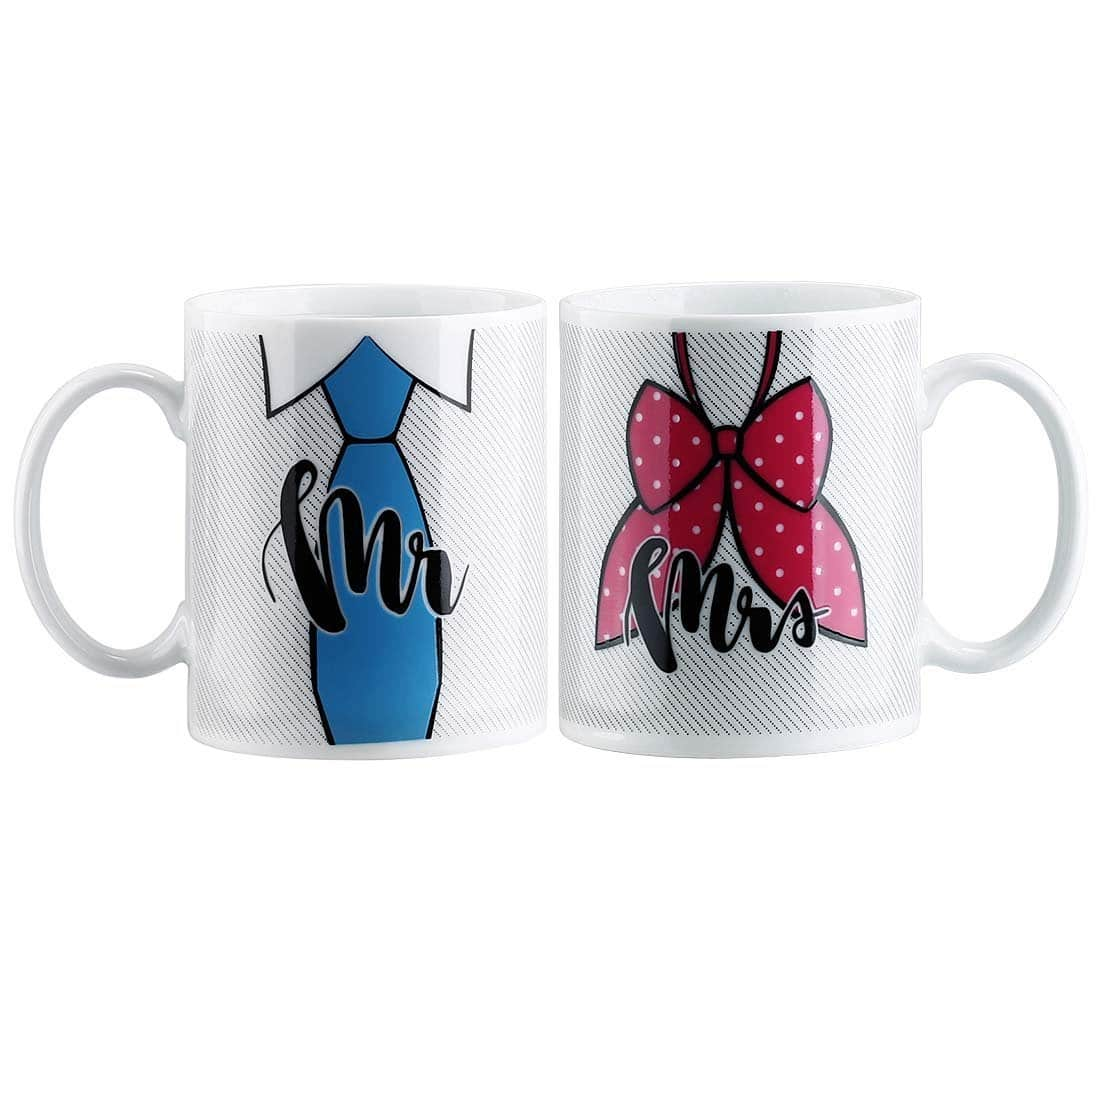 Avery Barn Mr & Mrs Color-Changing Heat-Sensitive Wedding Anniversary Mug Set $5.85